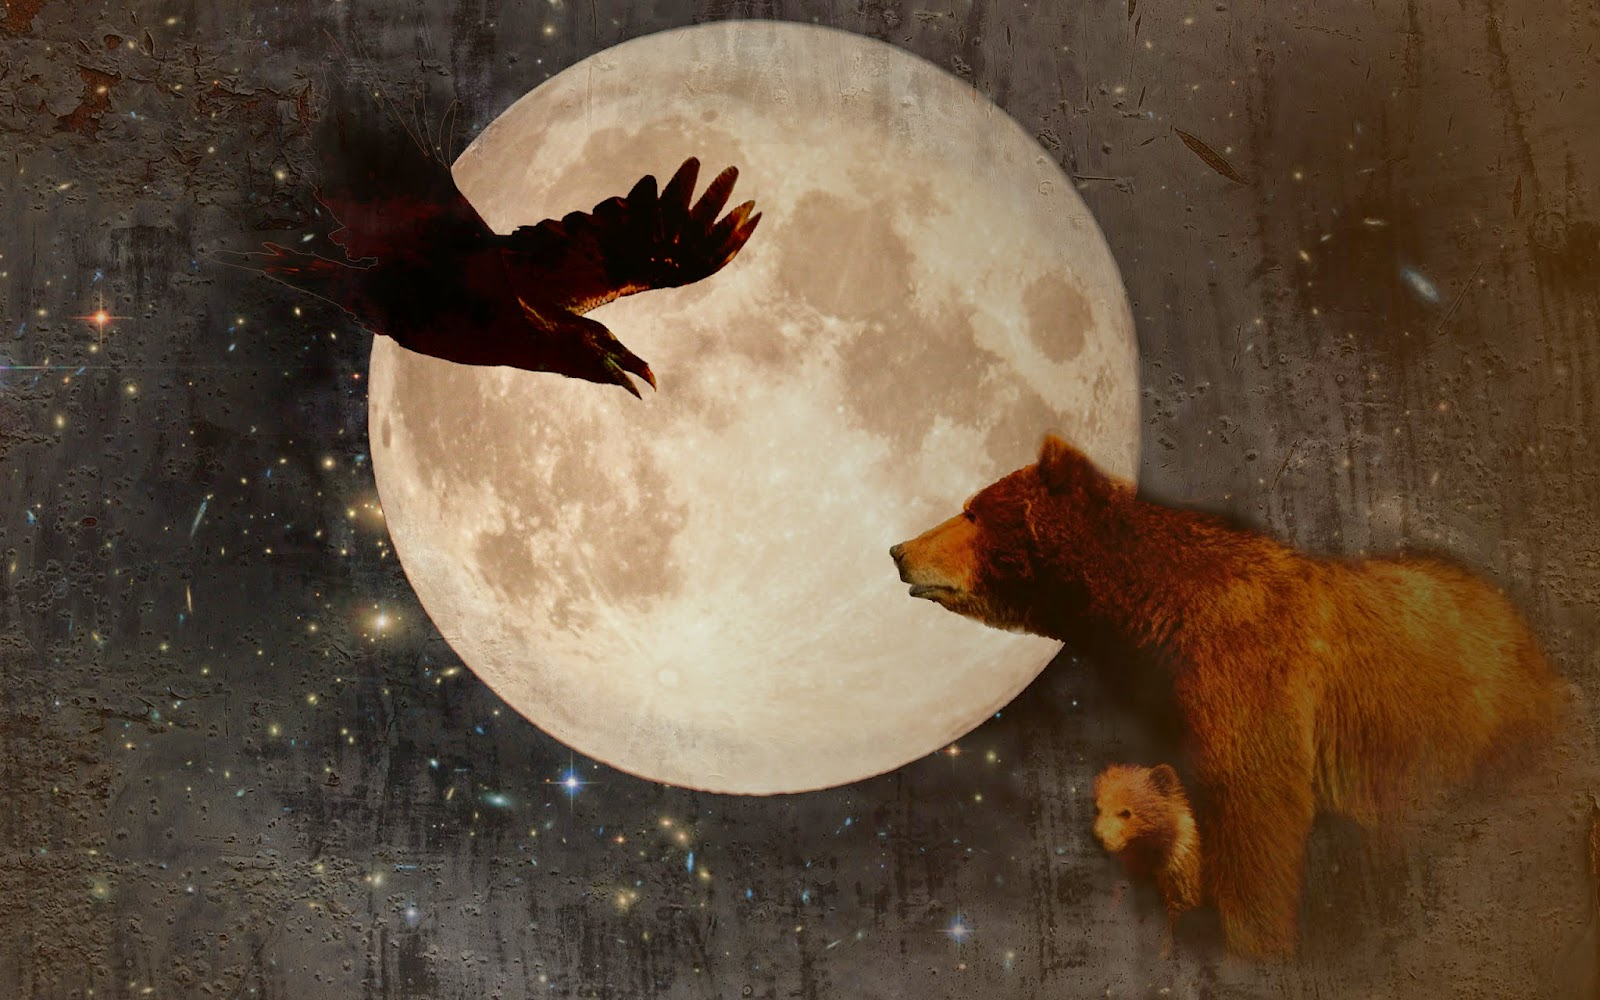 Raven and Bear in front of moon